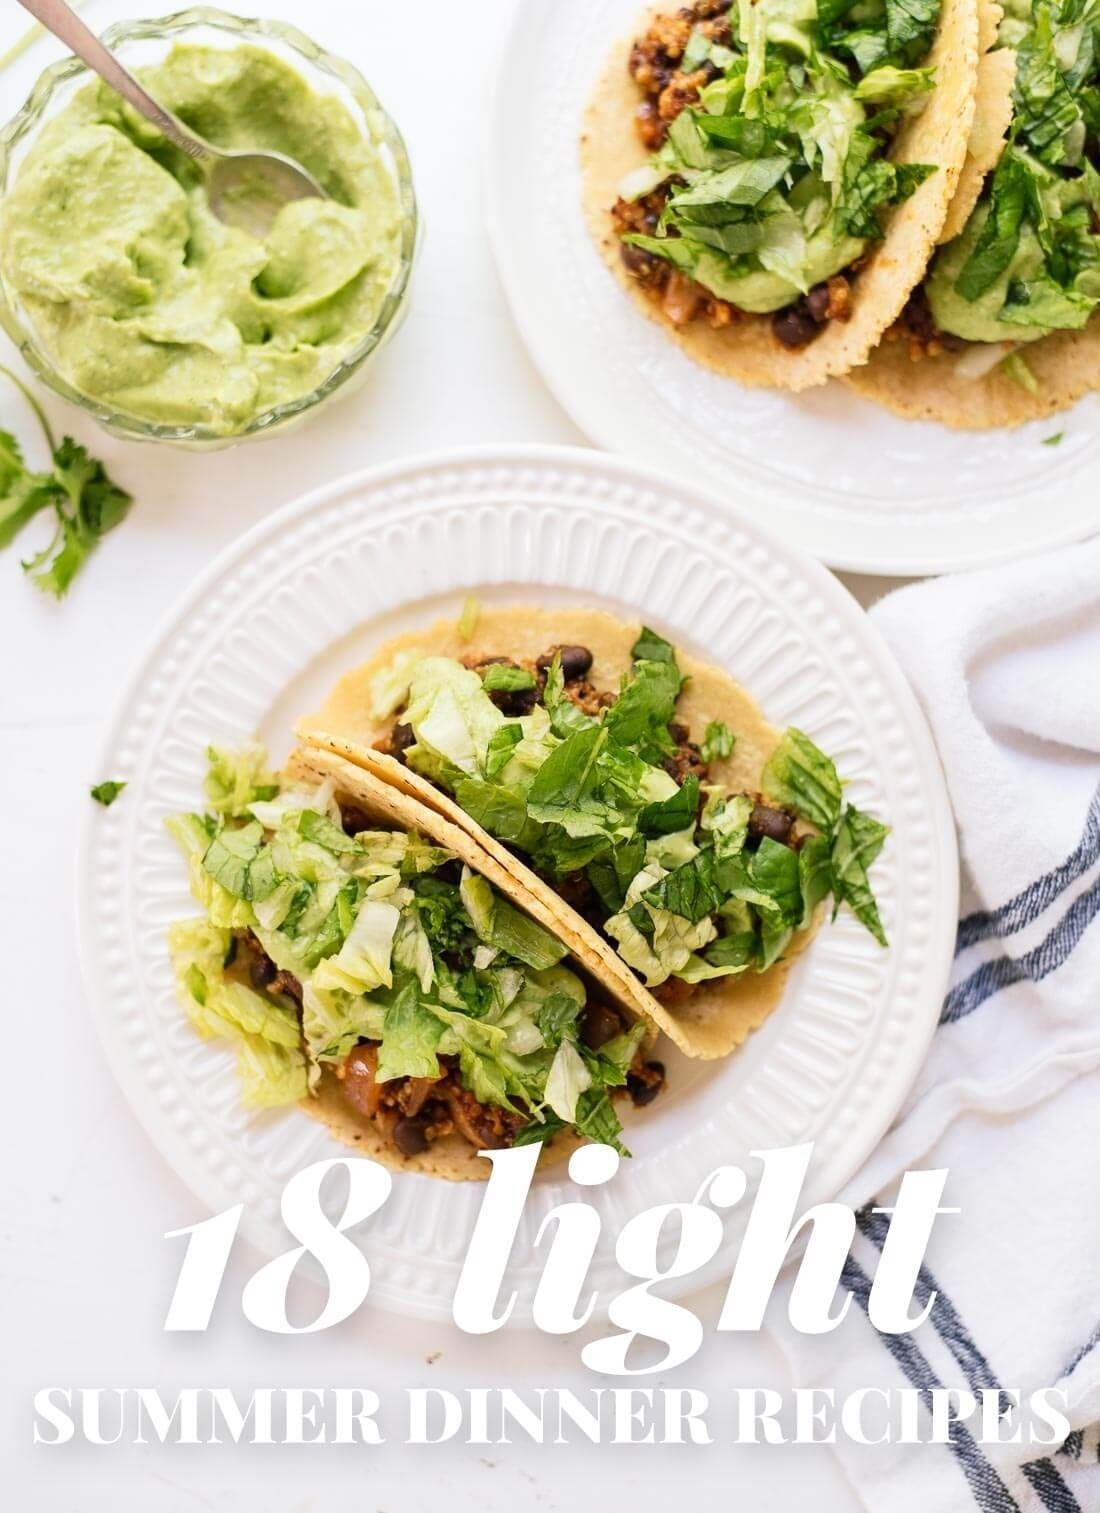 18 light summer dinner recipes - cookie and kate